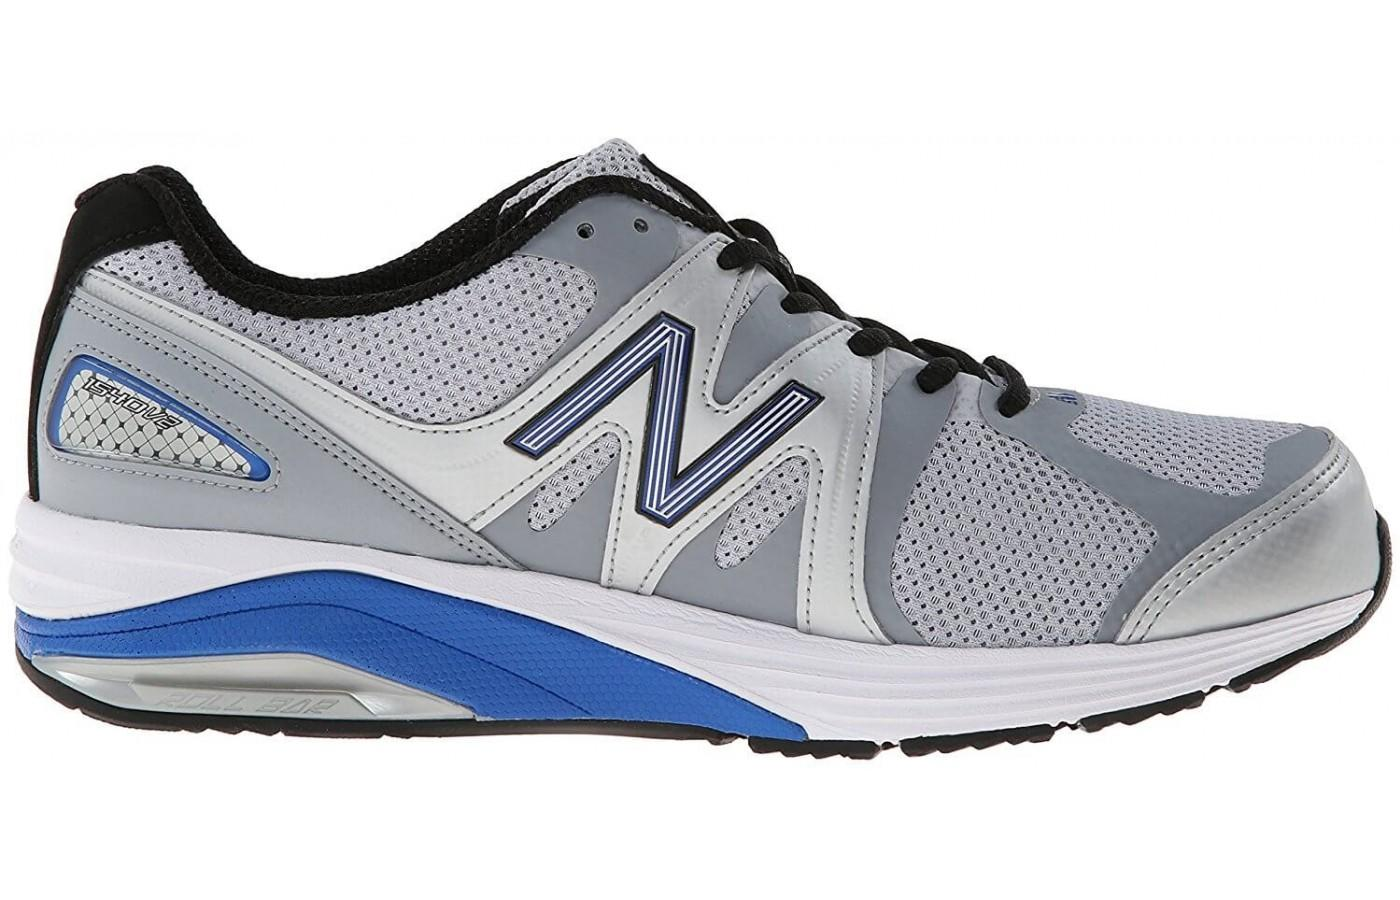 the New Balance 1540 v2's thick midsole gives stability and cushioning